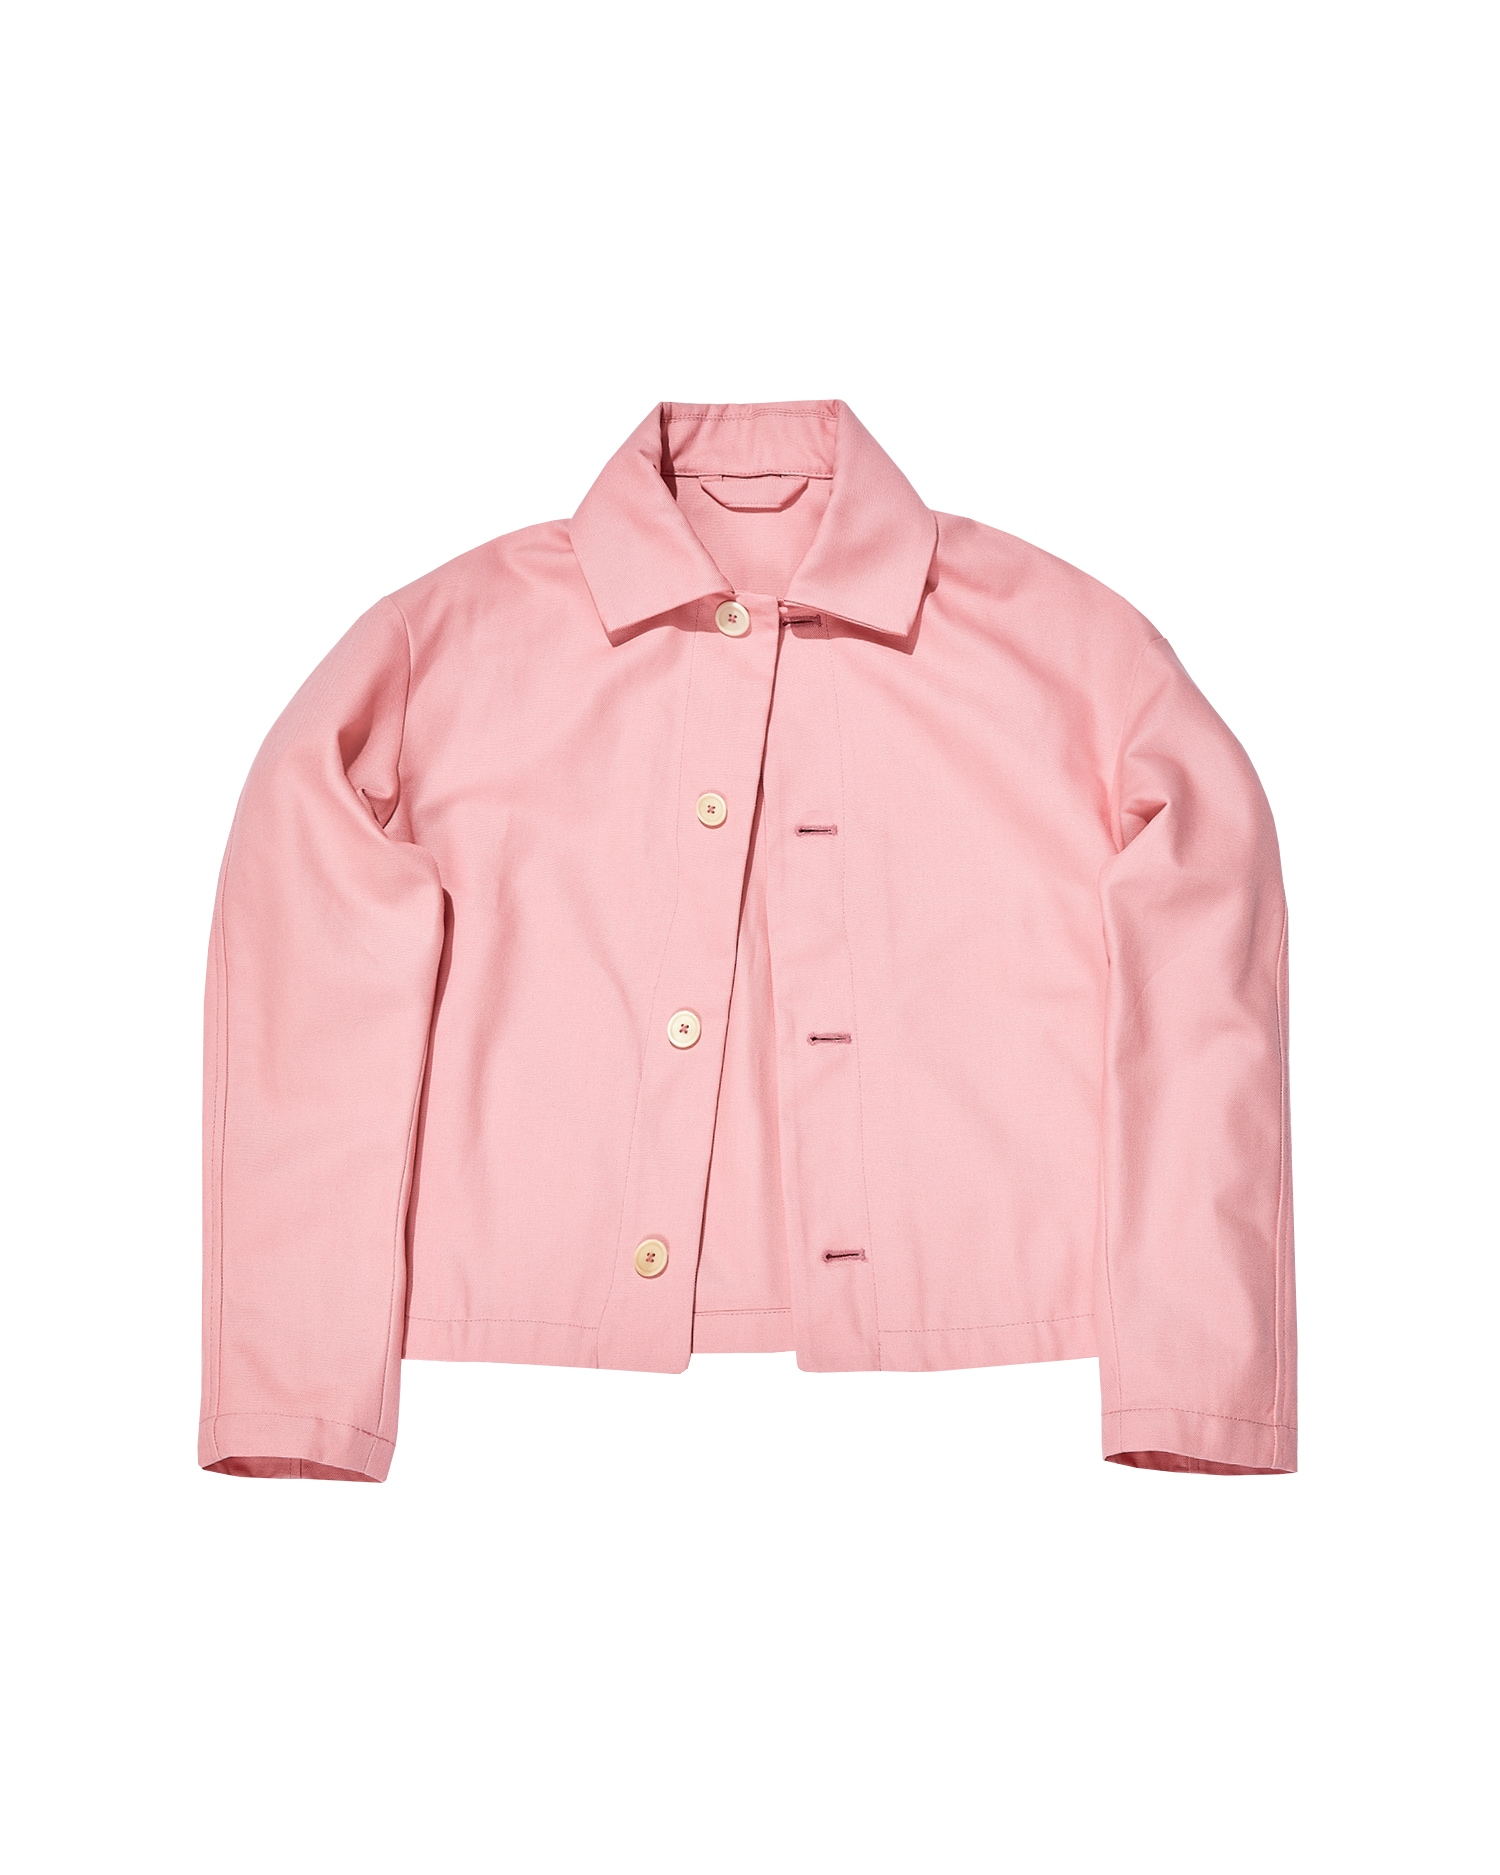 Shop One DNA Unisex Worker Jacket In Pink Duck Canvas